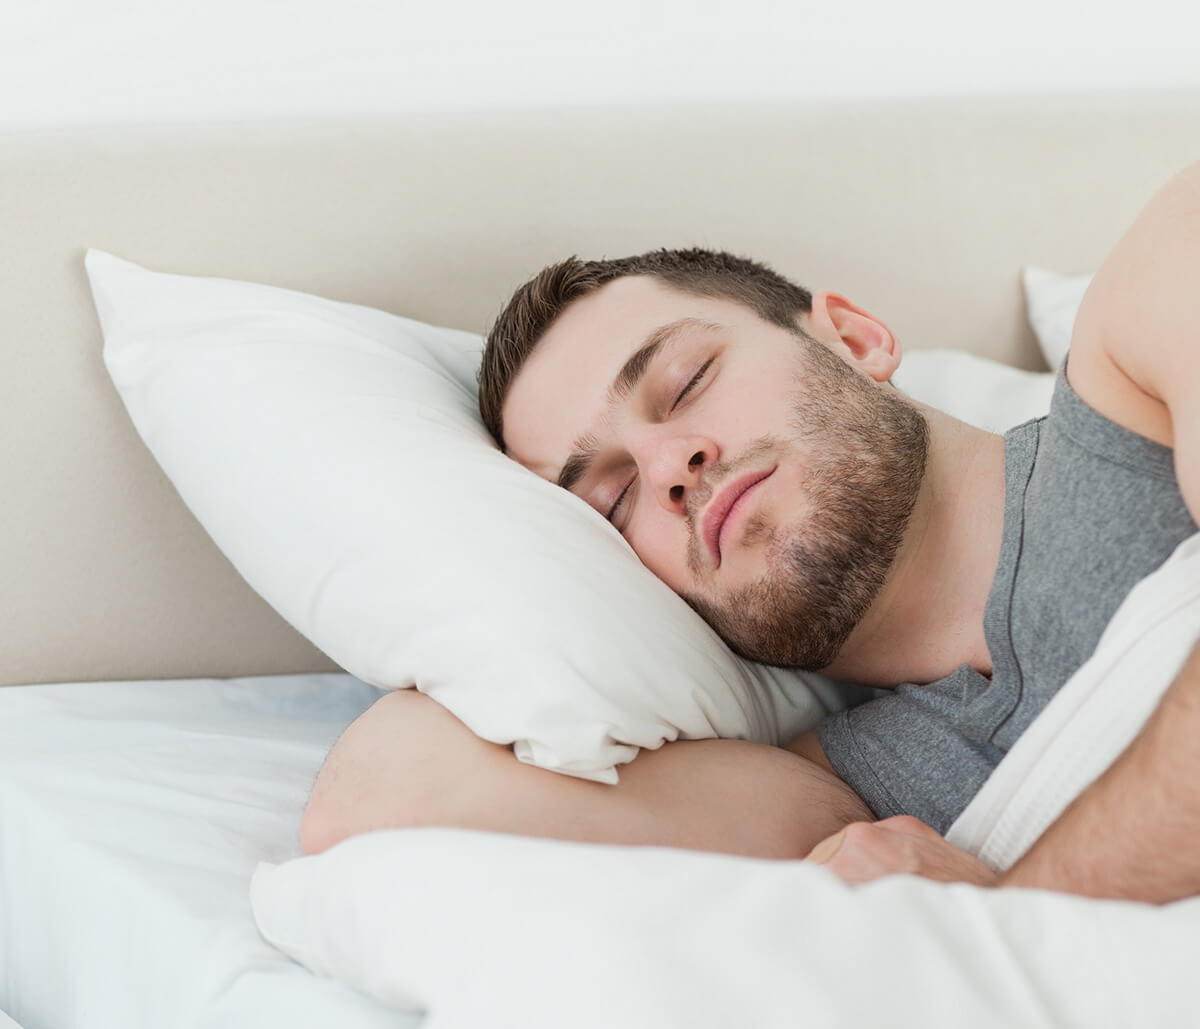 Effective Sleep Apnea Treatment without Cpap Offered in Willoughby Hills Area